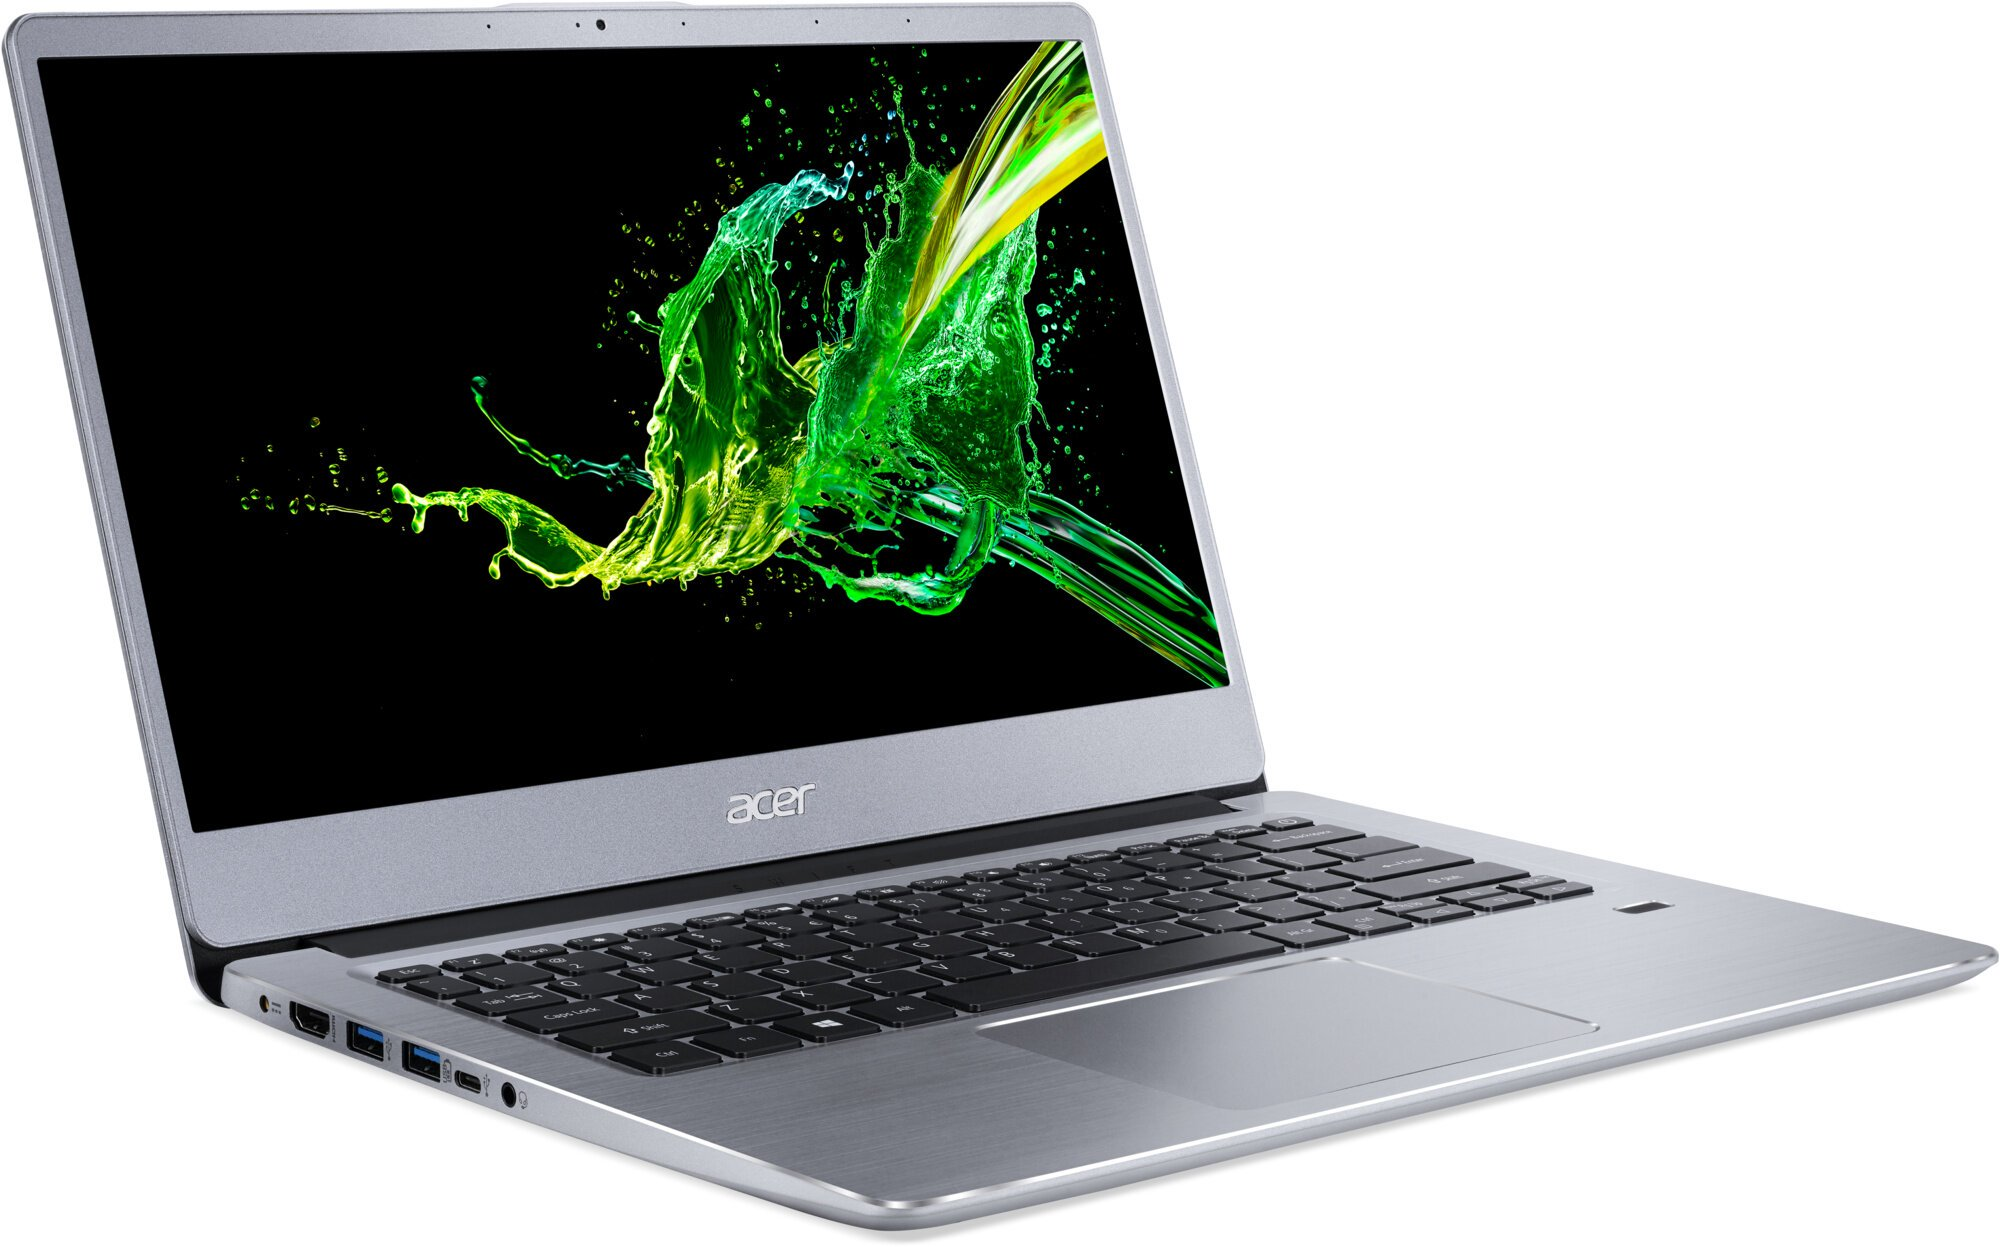 Acer Swift 3 SF314-58-74P8